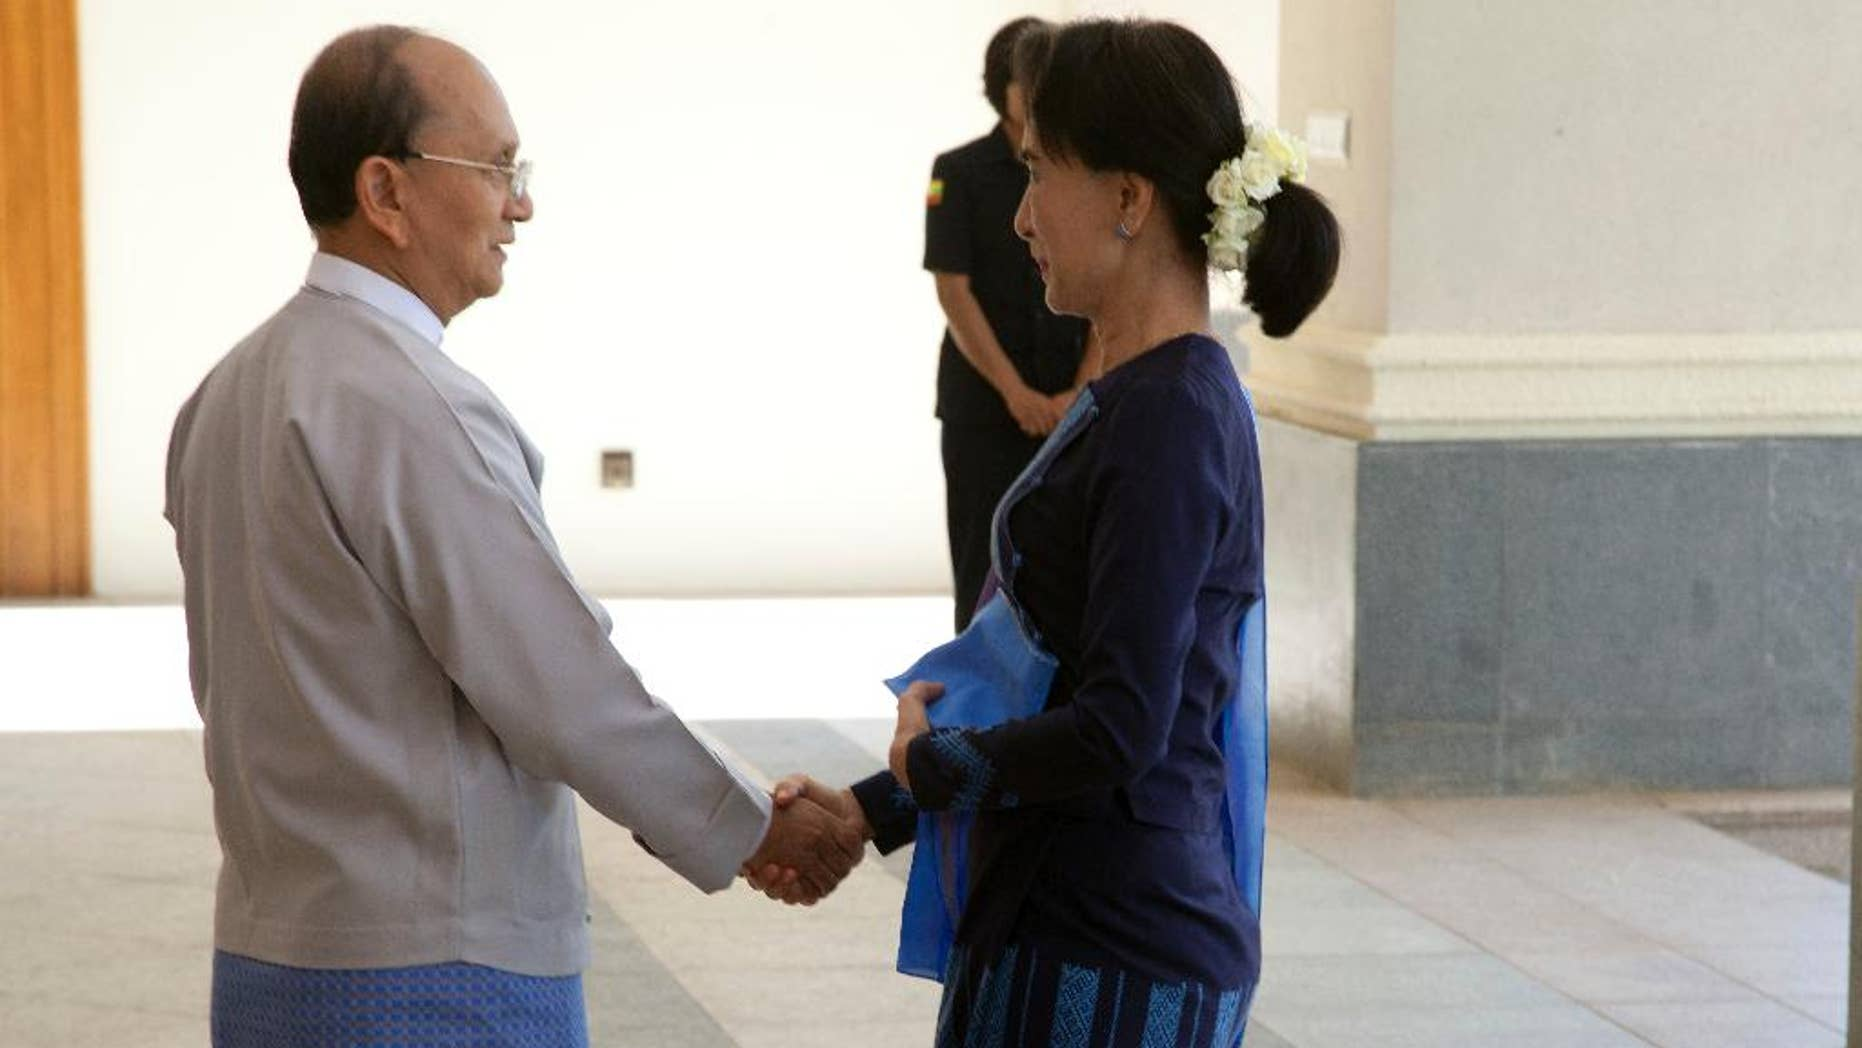 Myanmar President Thein Sein, left, shakes hands with Myanmar opposition leader Aung San Suu Kyi during their meeting at Myanmar Presidential Palace in Naypyitaw, Myanmar Friday, Oct 31, 2014. Myanmar's president is holding a rare meeting with Suu Kyi that also includes the country's political and military heavyweights. (AP Photo/Khin Maung Win)